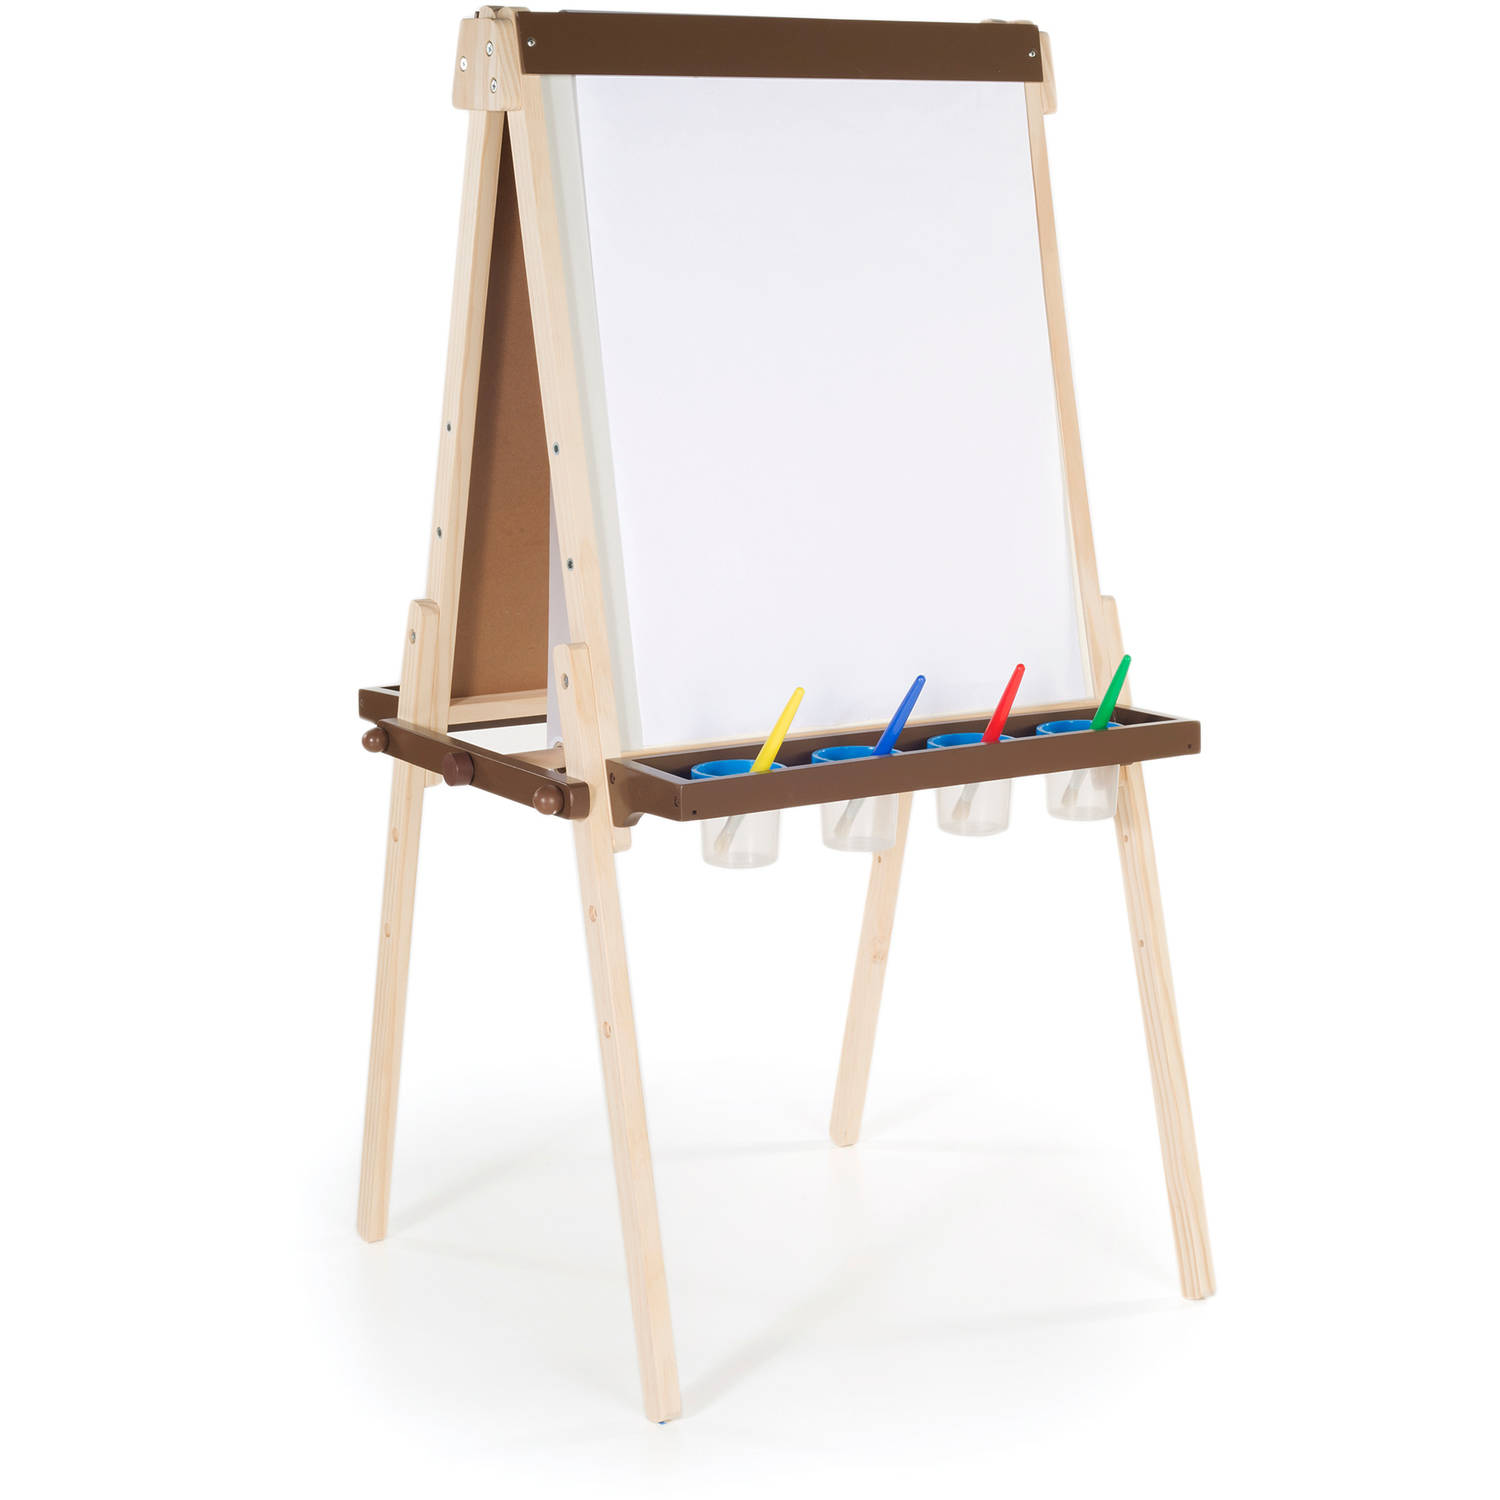 guidecraft deluxe double-sided floor easel - walmart